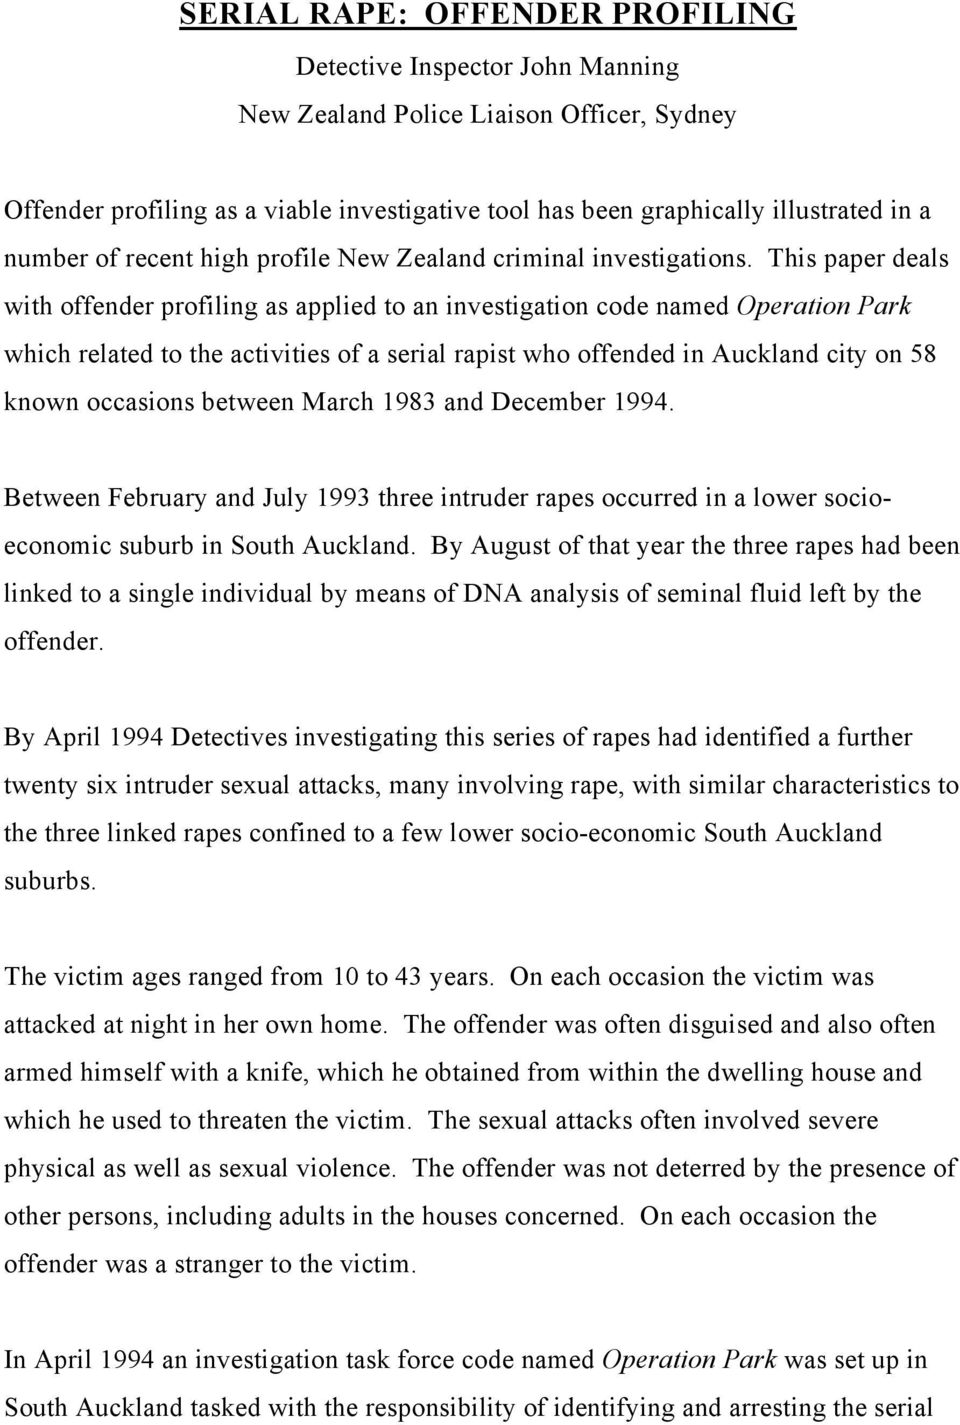 This paper deals with offender profiling as applied to an investigation code named Operation Park which related to the activities of a serial rapist who offended in Auckland city on 58 known